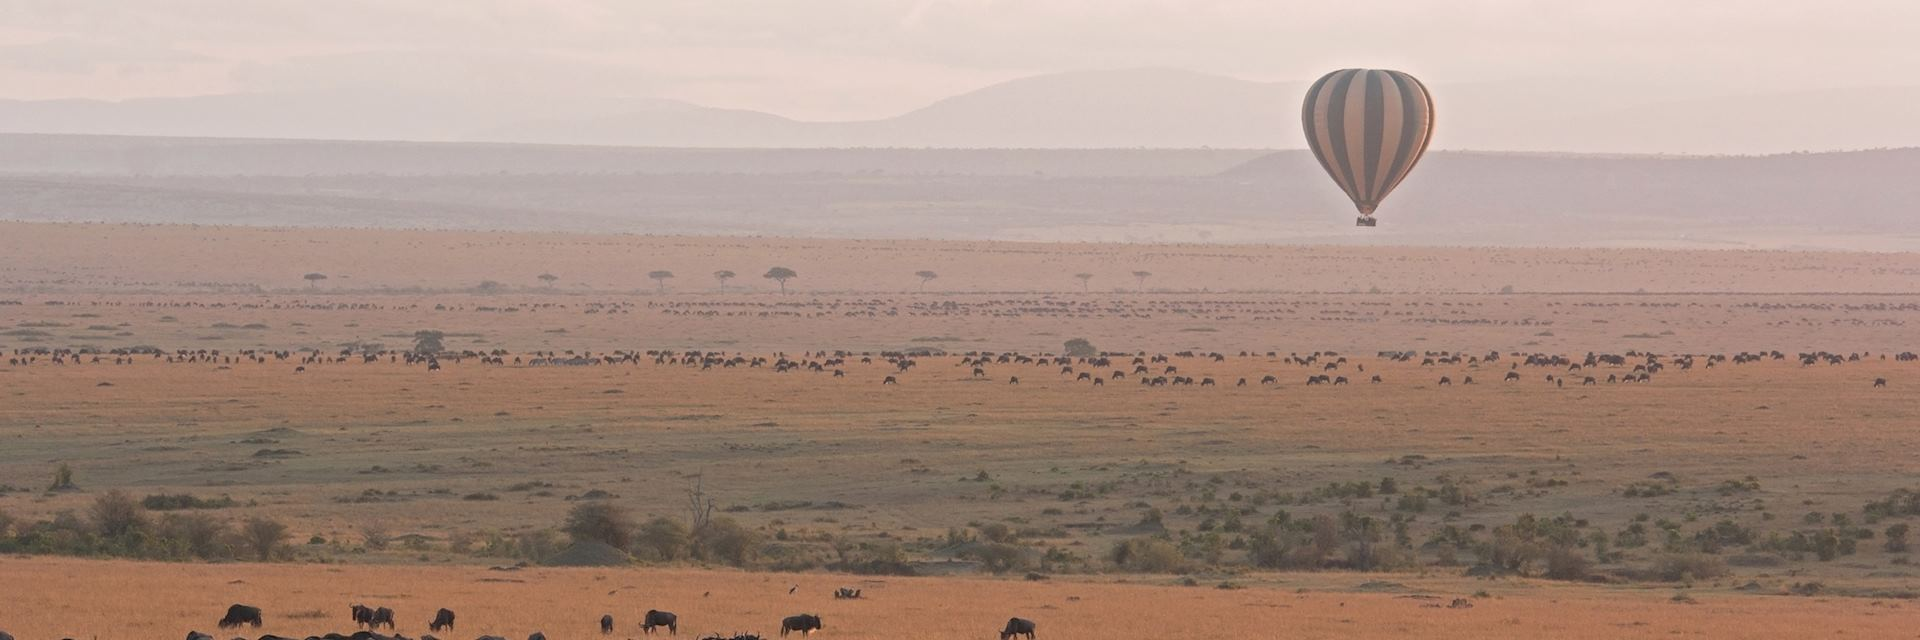 Hot air balloon floating across the Masai Mara